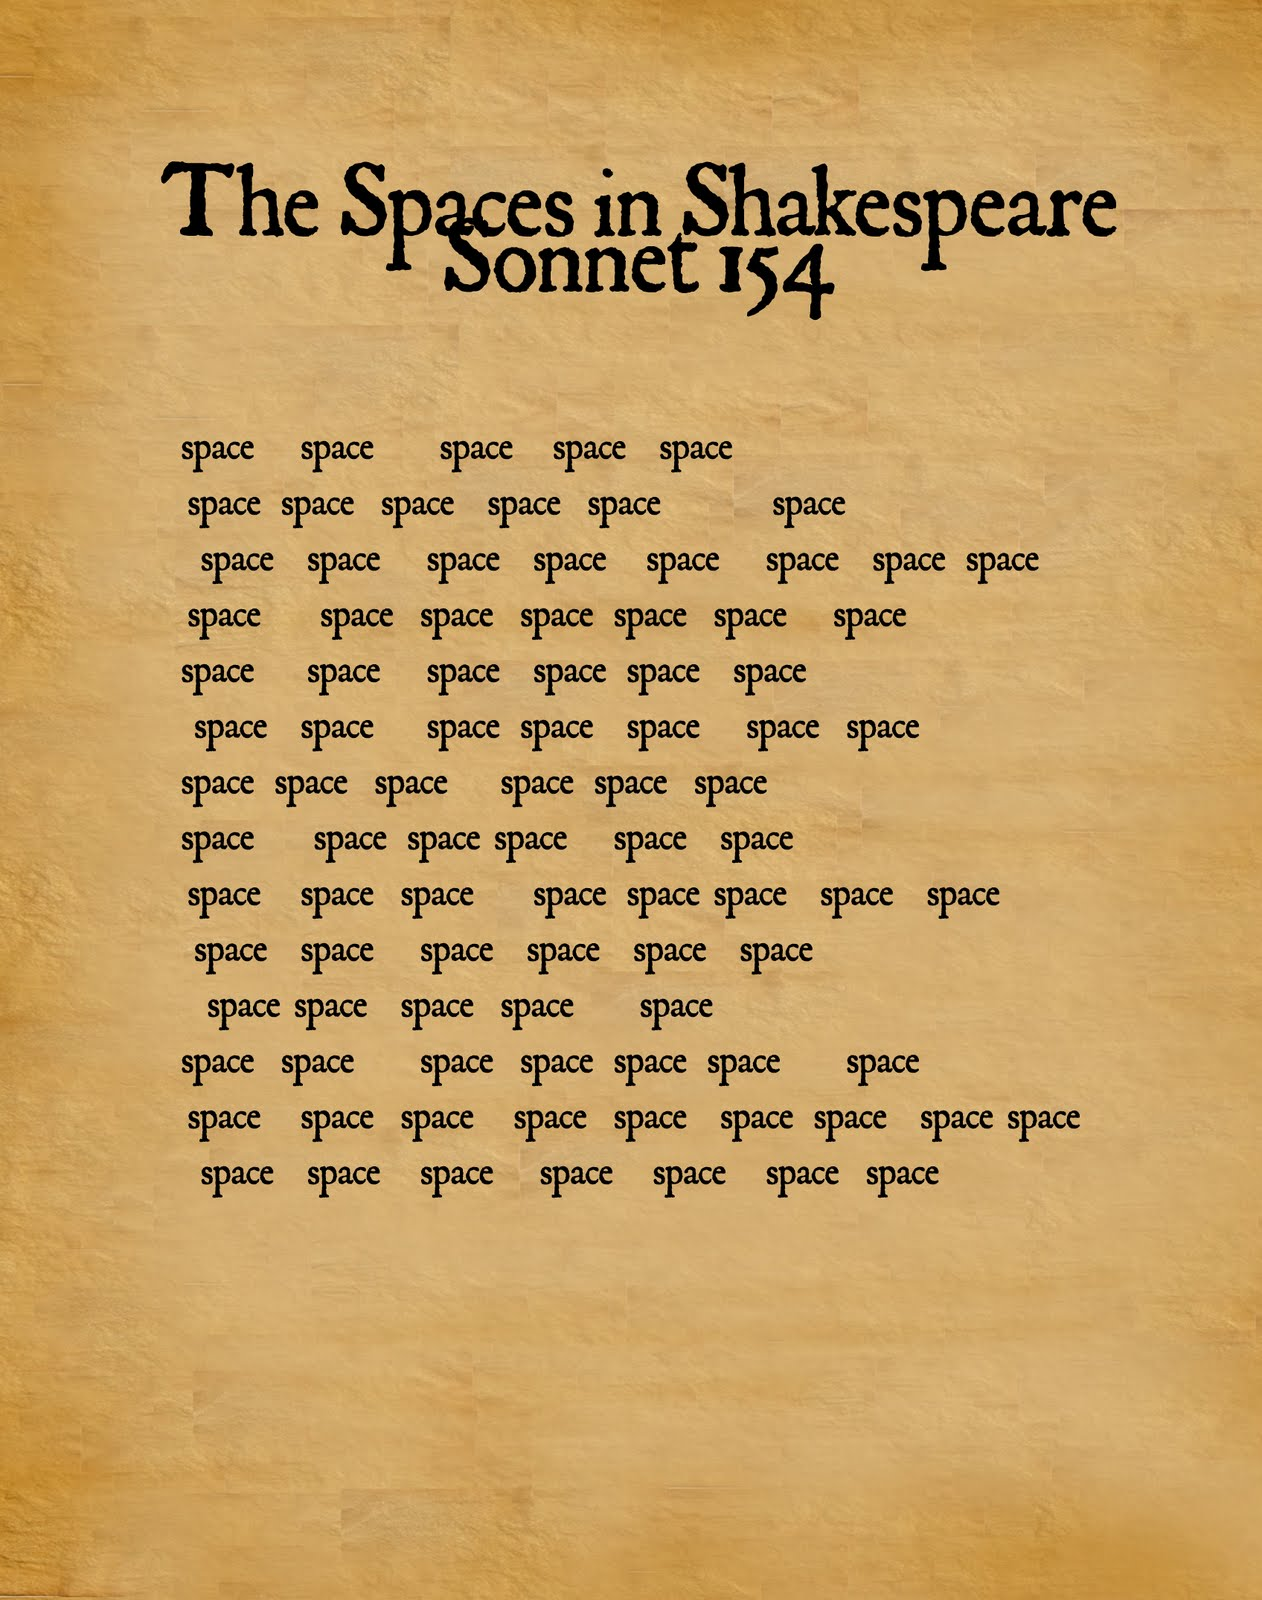 An analysis of the william shakespeares sonnets about love